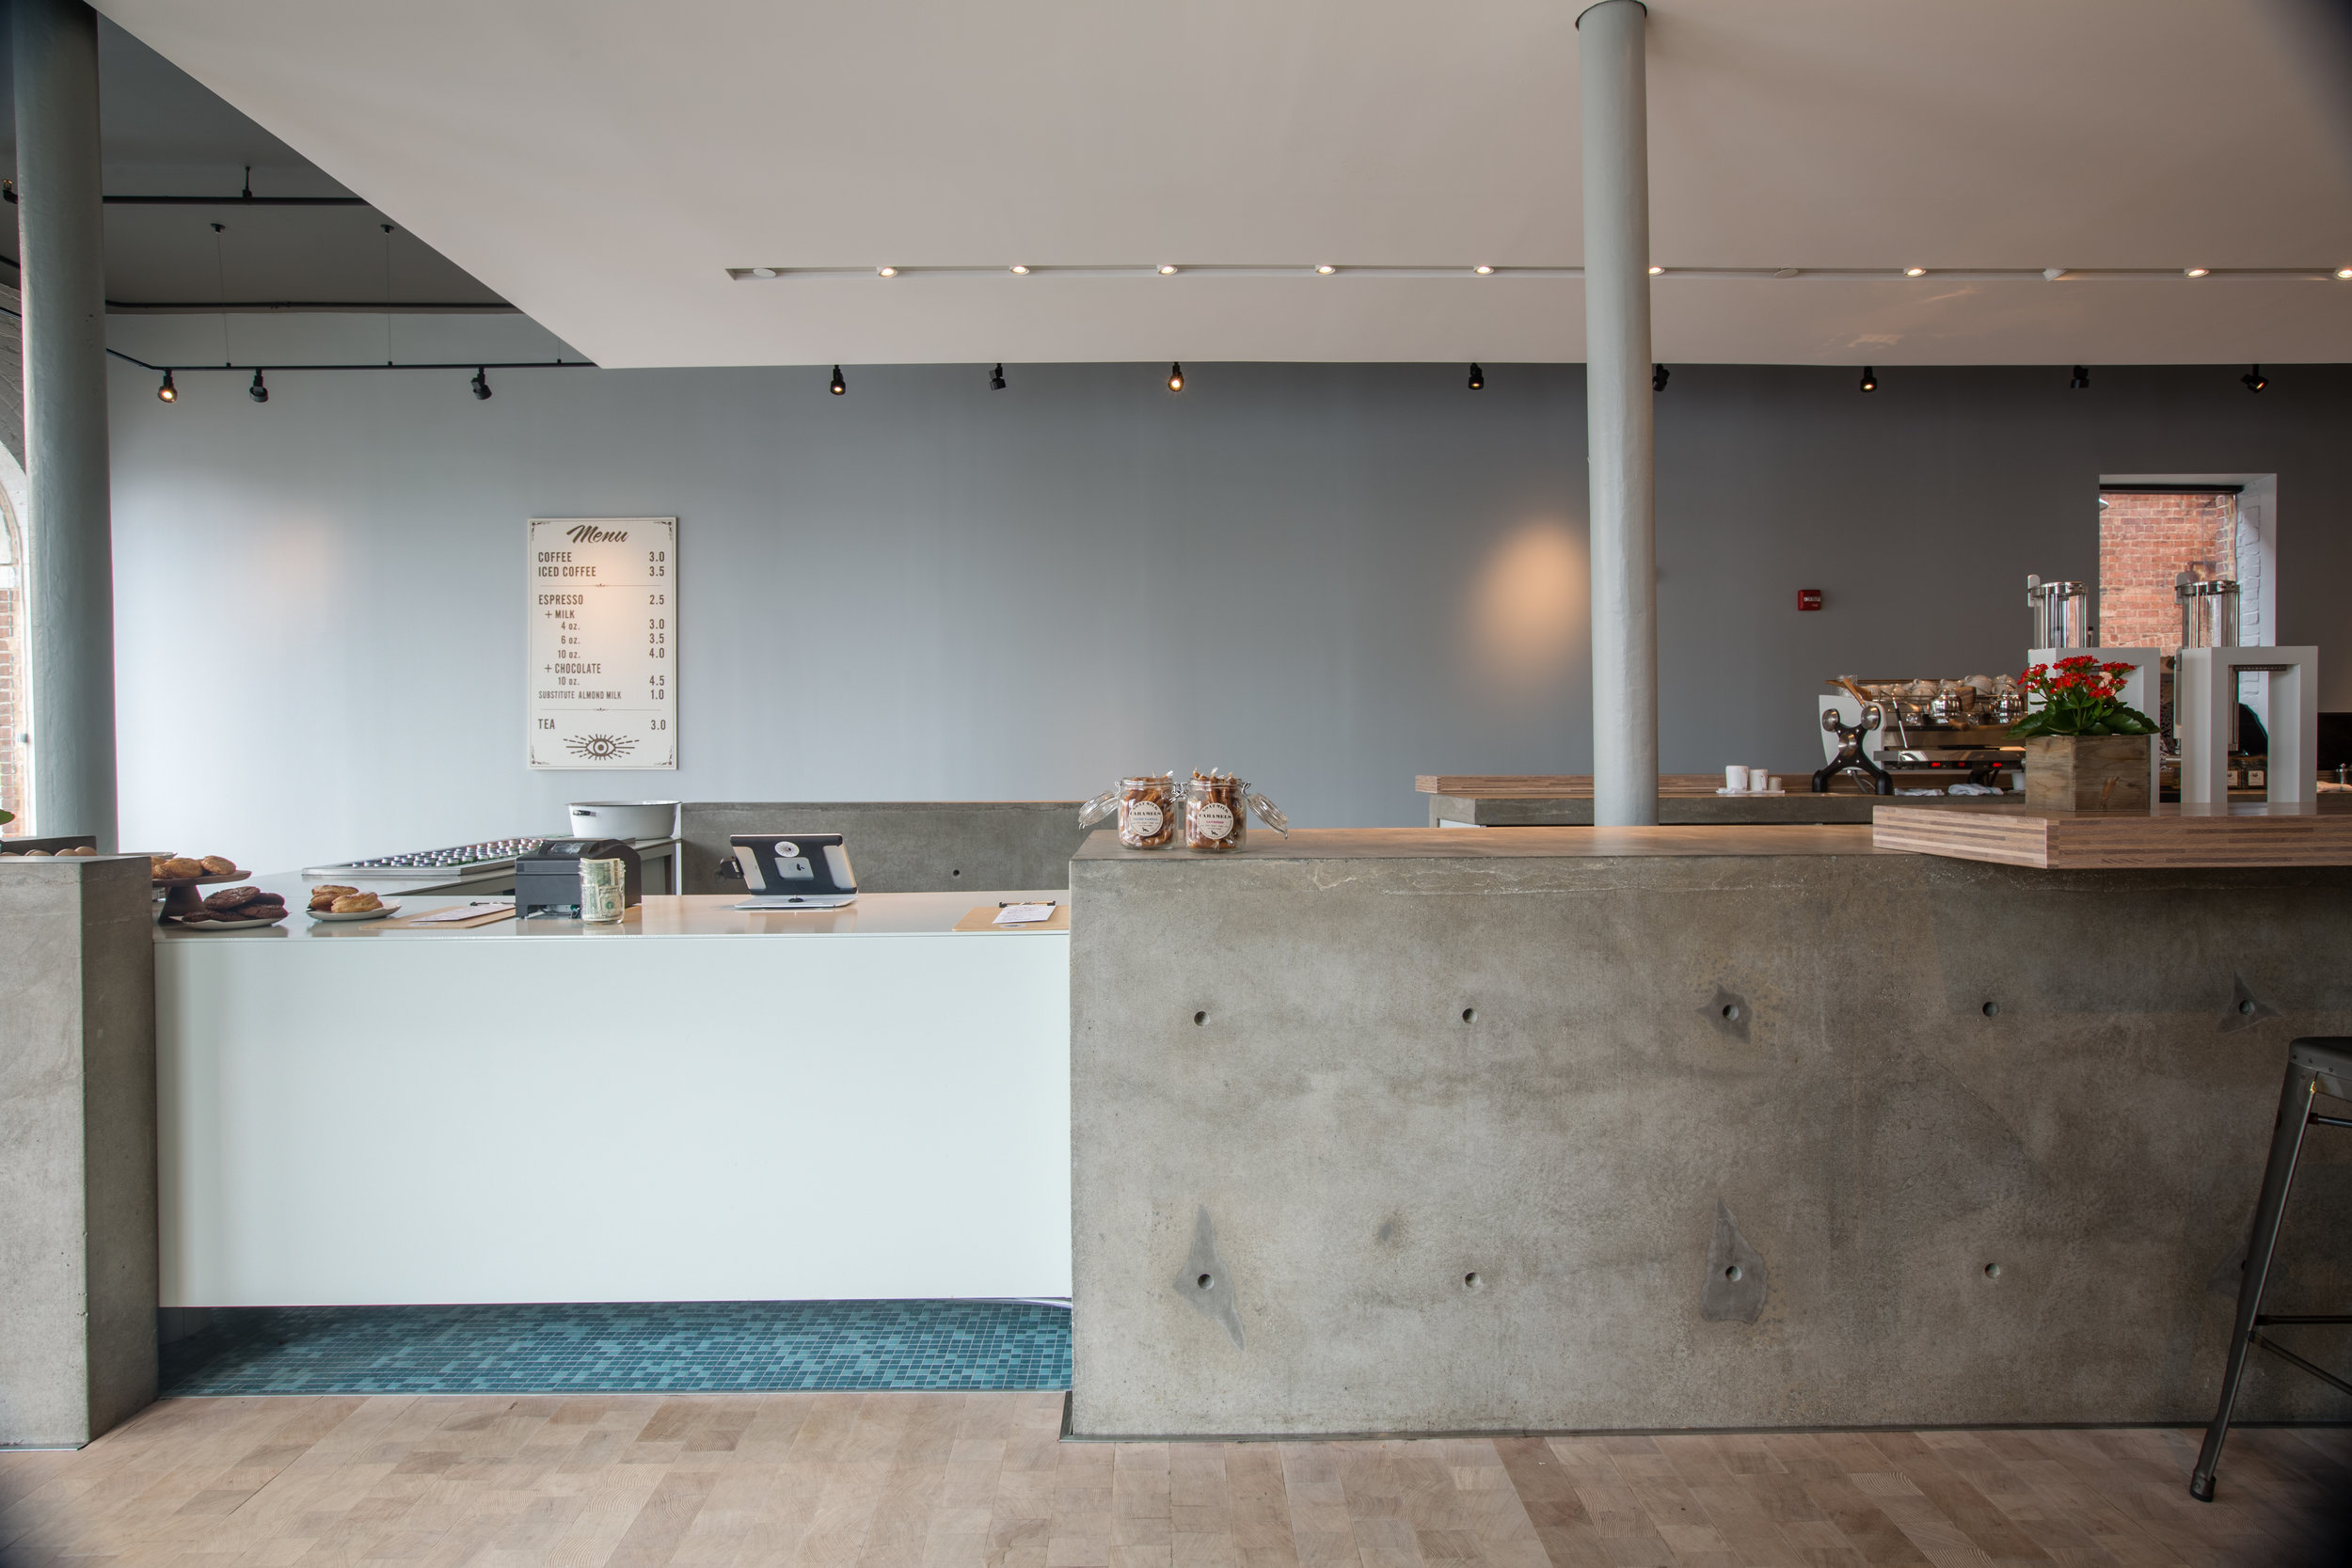 A custom design for a local coffee shop. They wanted something that showcased the material and utilized concrete in its truest form. For this project the floor need to be reinforced because we used traditional solid poured reinforced concrete in a new and unexpected application. The space was characterized by the juxtaposition of materials and textures.